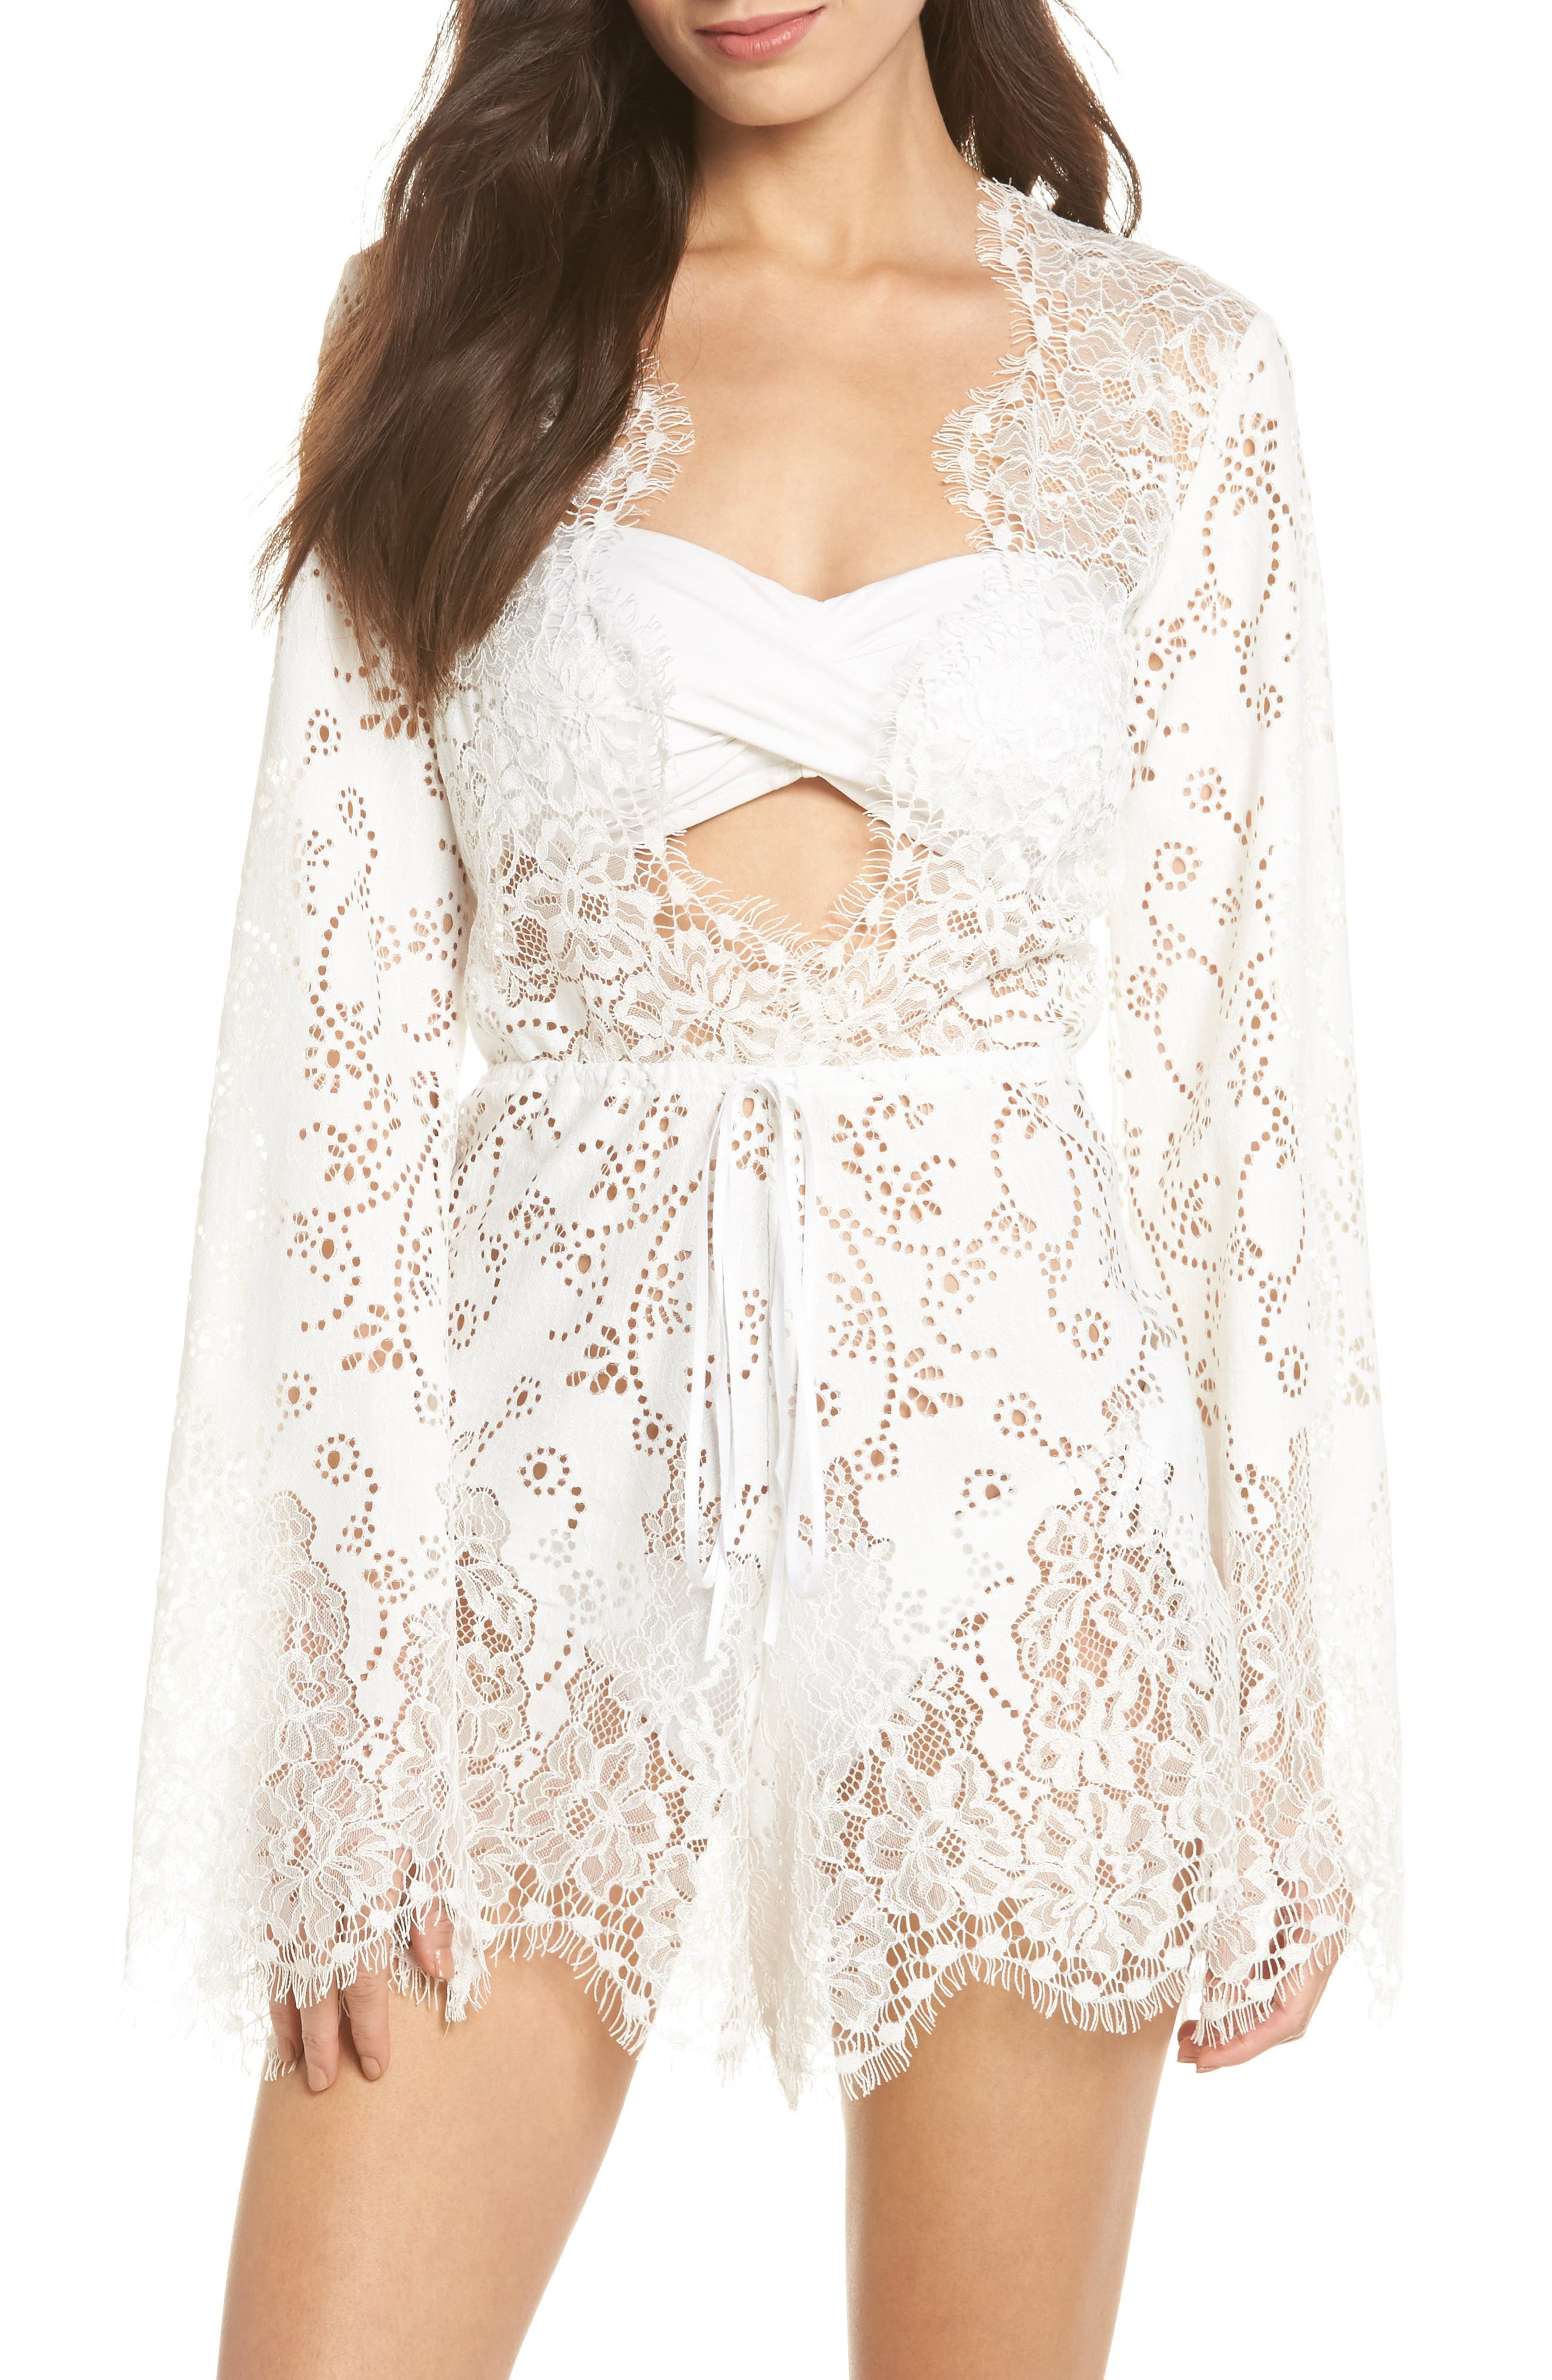 Olympia Lace Cover-Up Romper,                             Main thumbnail 2, color,